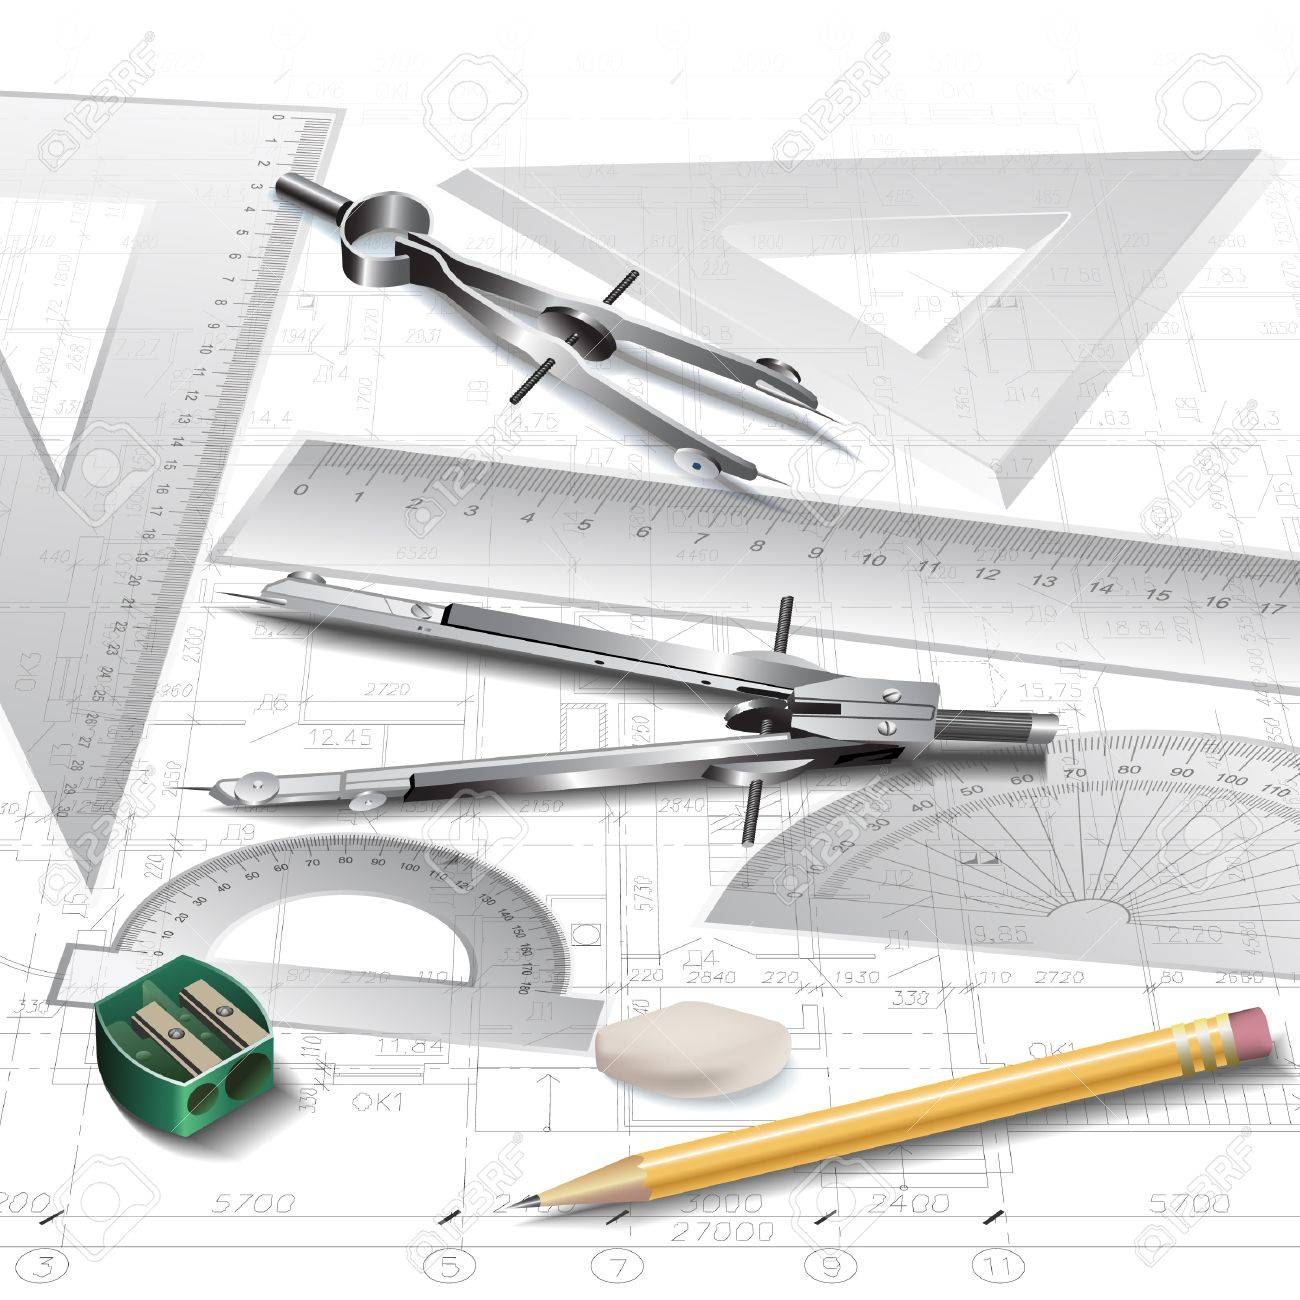 Architectural Drawing Set set of architectural drawing tools, isolated on white royalty free